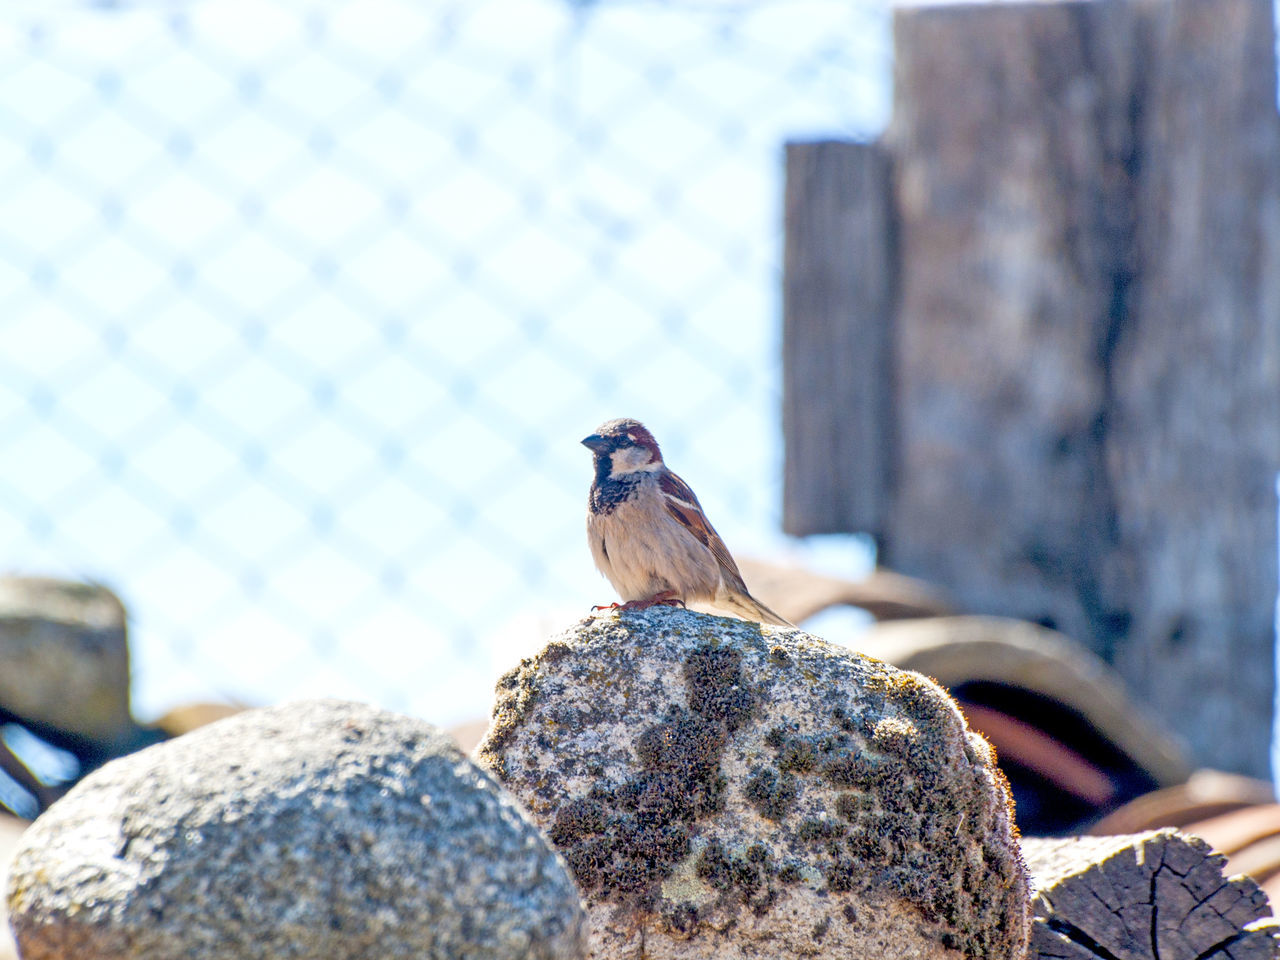 Adapted To The City Animal Themes Animal Wildlife Animals In The Wild Architecture Bird Birds City Life Close-up Focus On Foreground Nature One Animal Outdoors Passer Passer Domesticus Perching Robin Rooftop Sparrow Sparrow Bird Sparrows Urban Animals Urban Birds Urban Landscape Wildlife